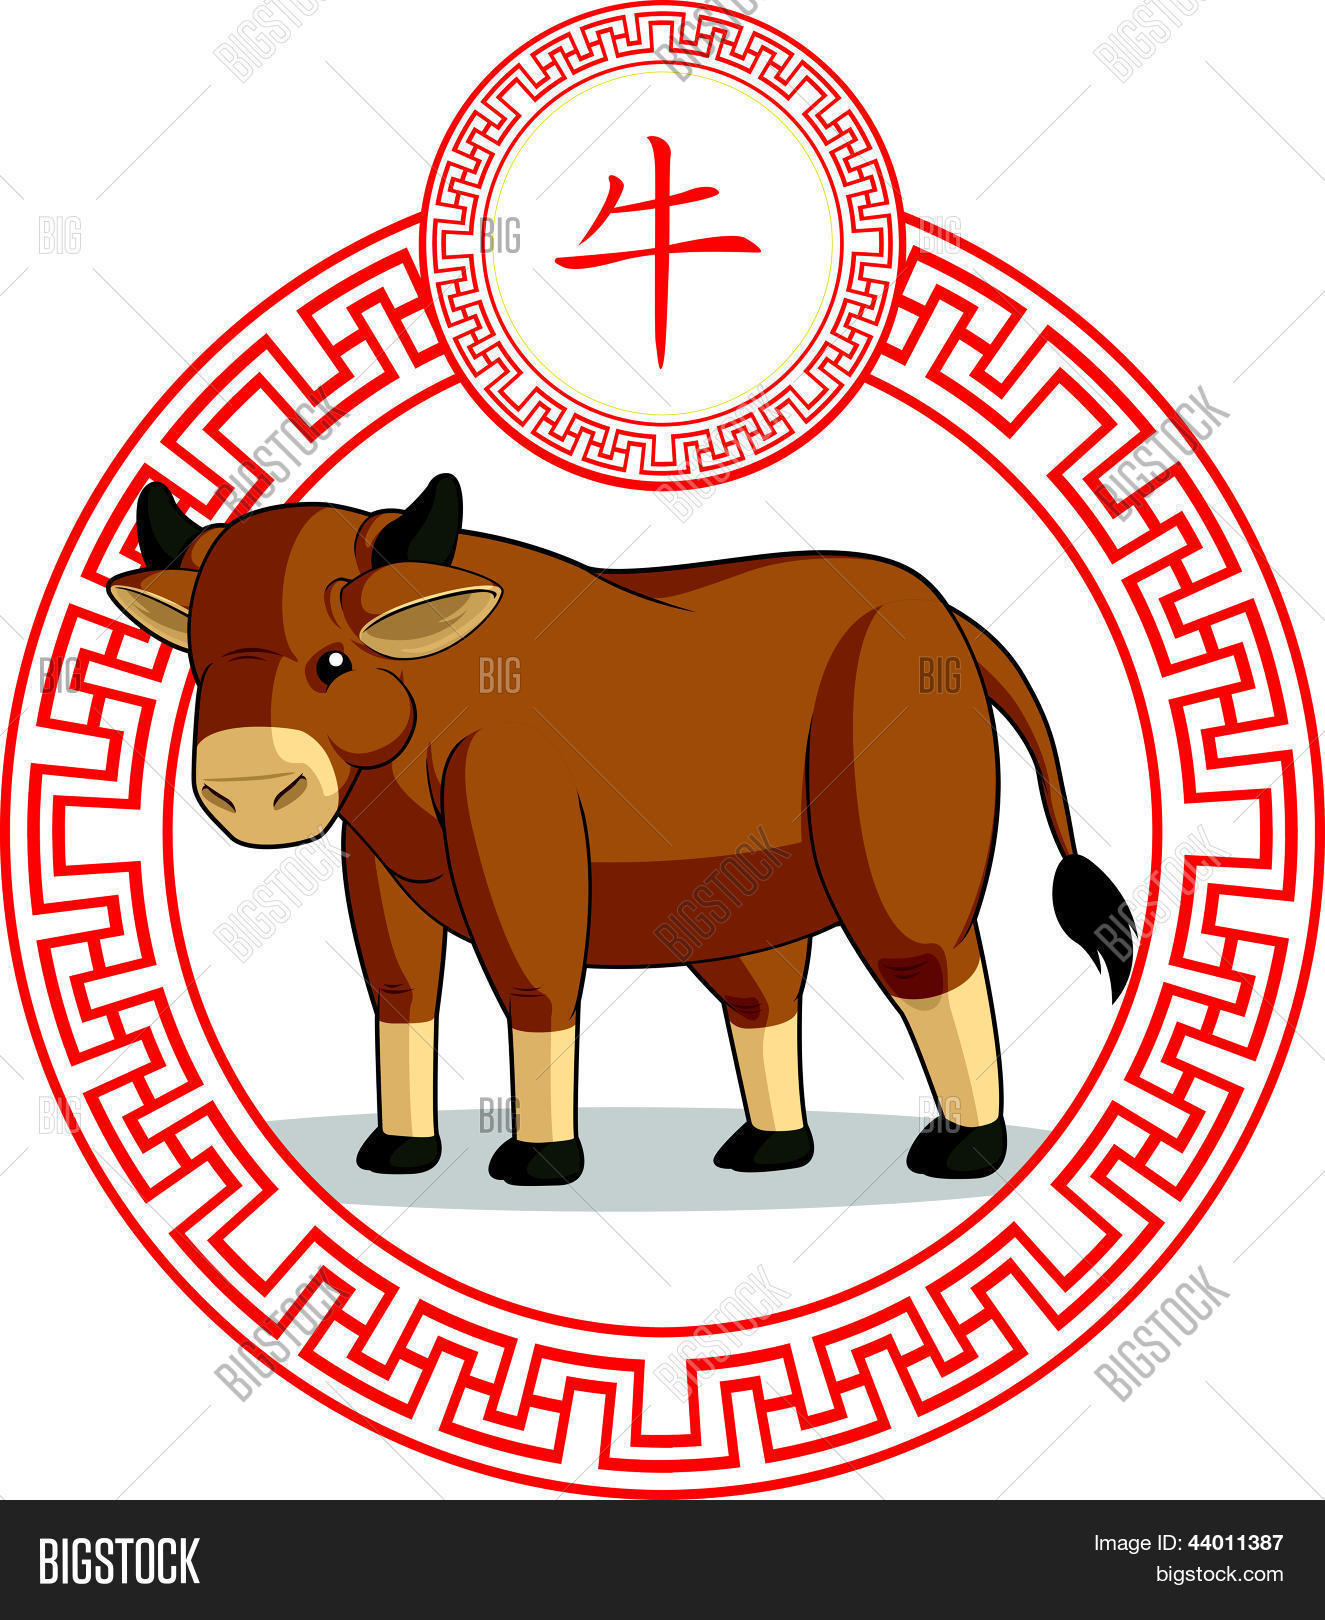 Chinese Zodiac Animal Vector & Photo (Free Trial) | Bigstock